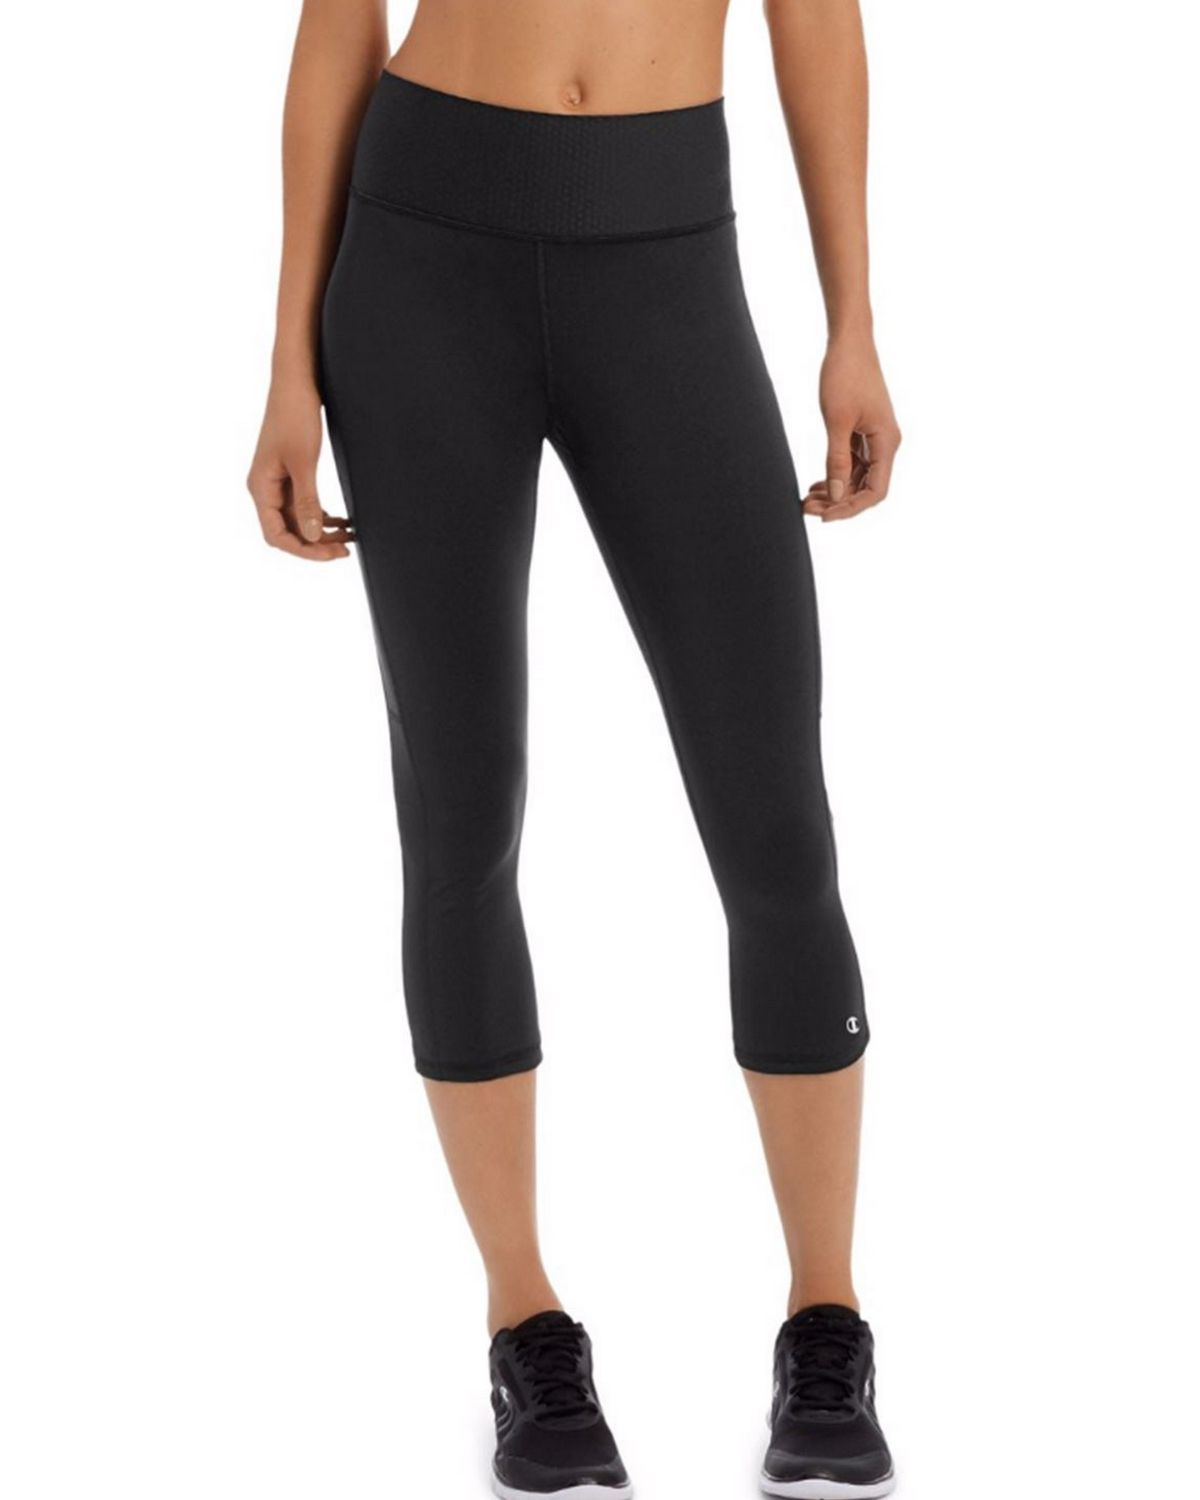 Champion M1590 Womens Capri - Black - S M1590